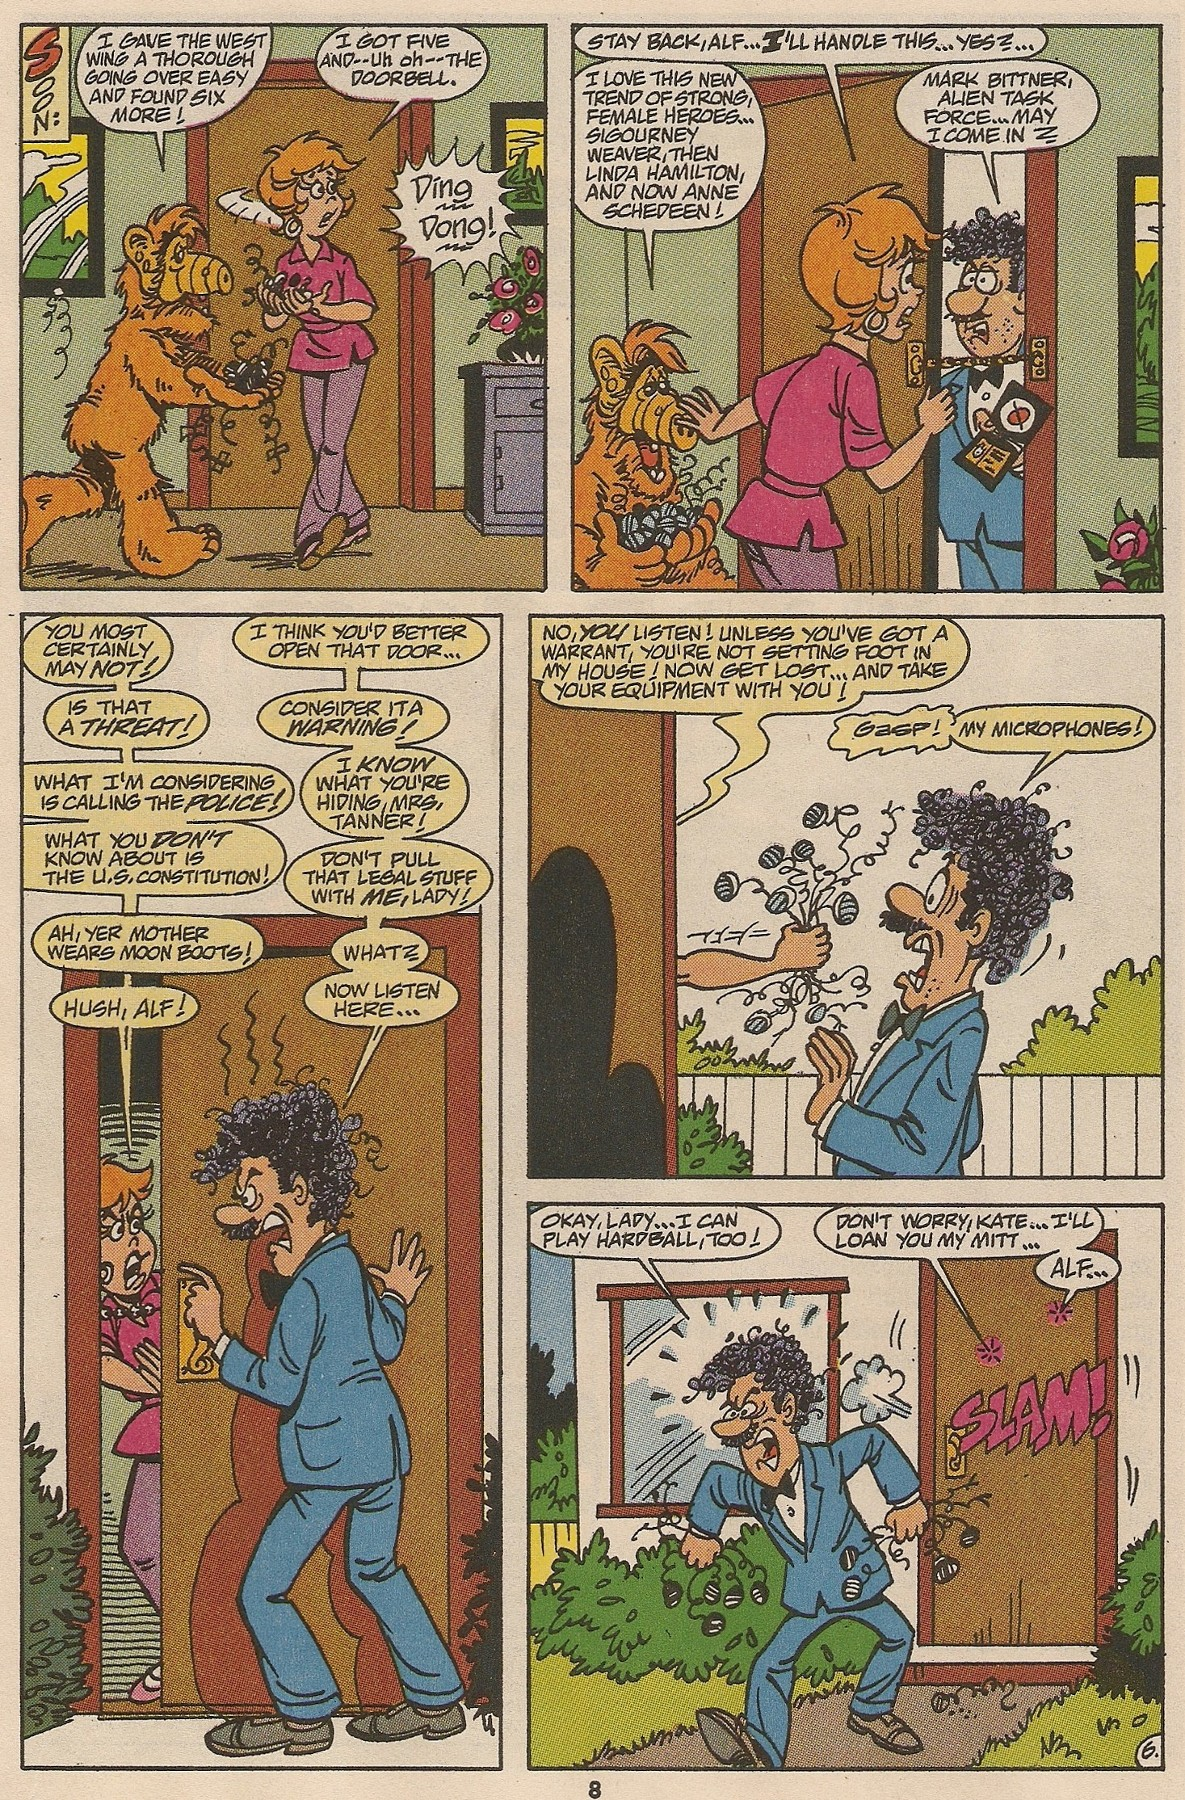 Read online ALF comic -  Issue #48 - 10